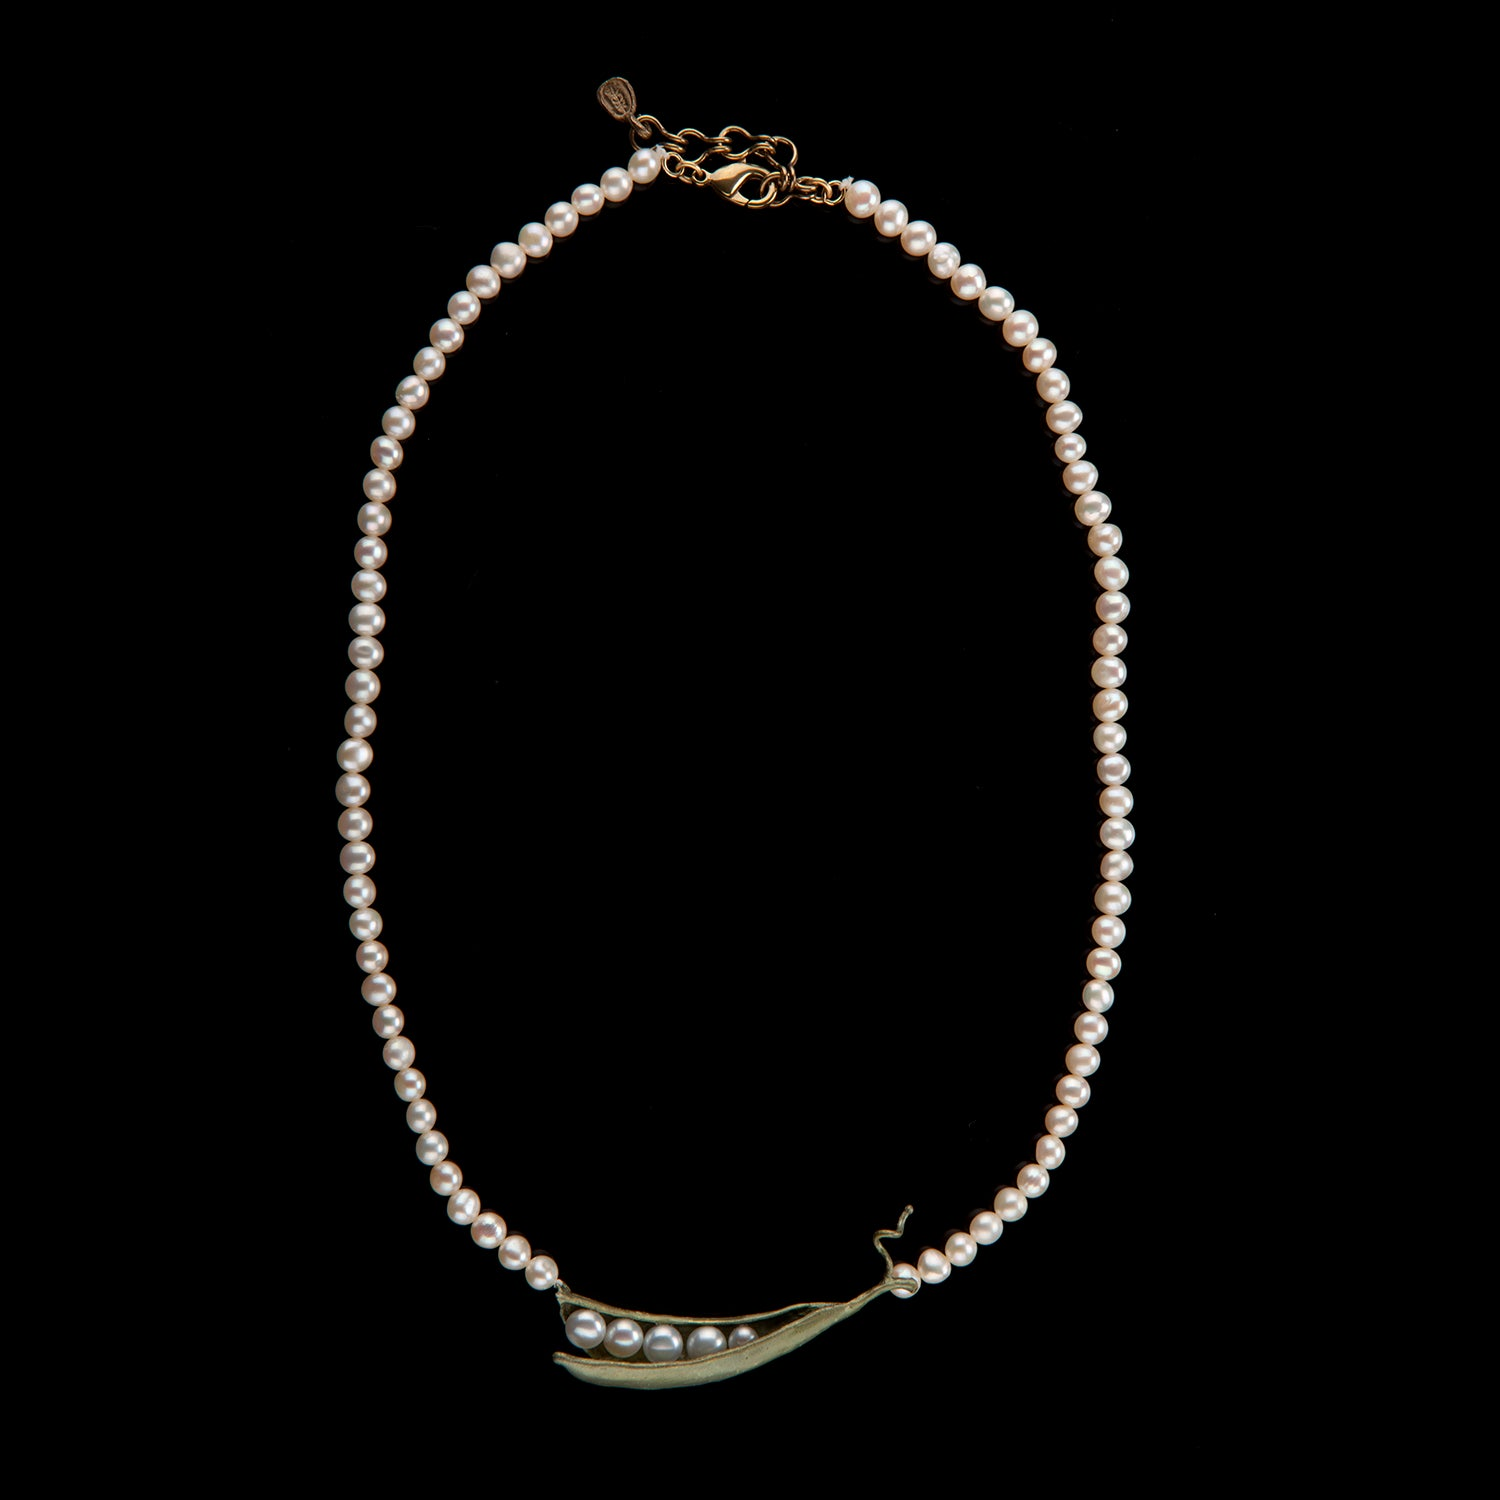 Pea Pod Necklace - Pearls